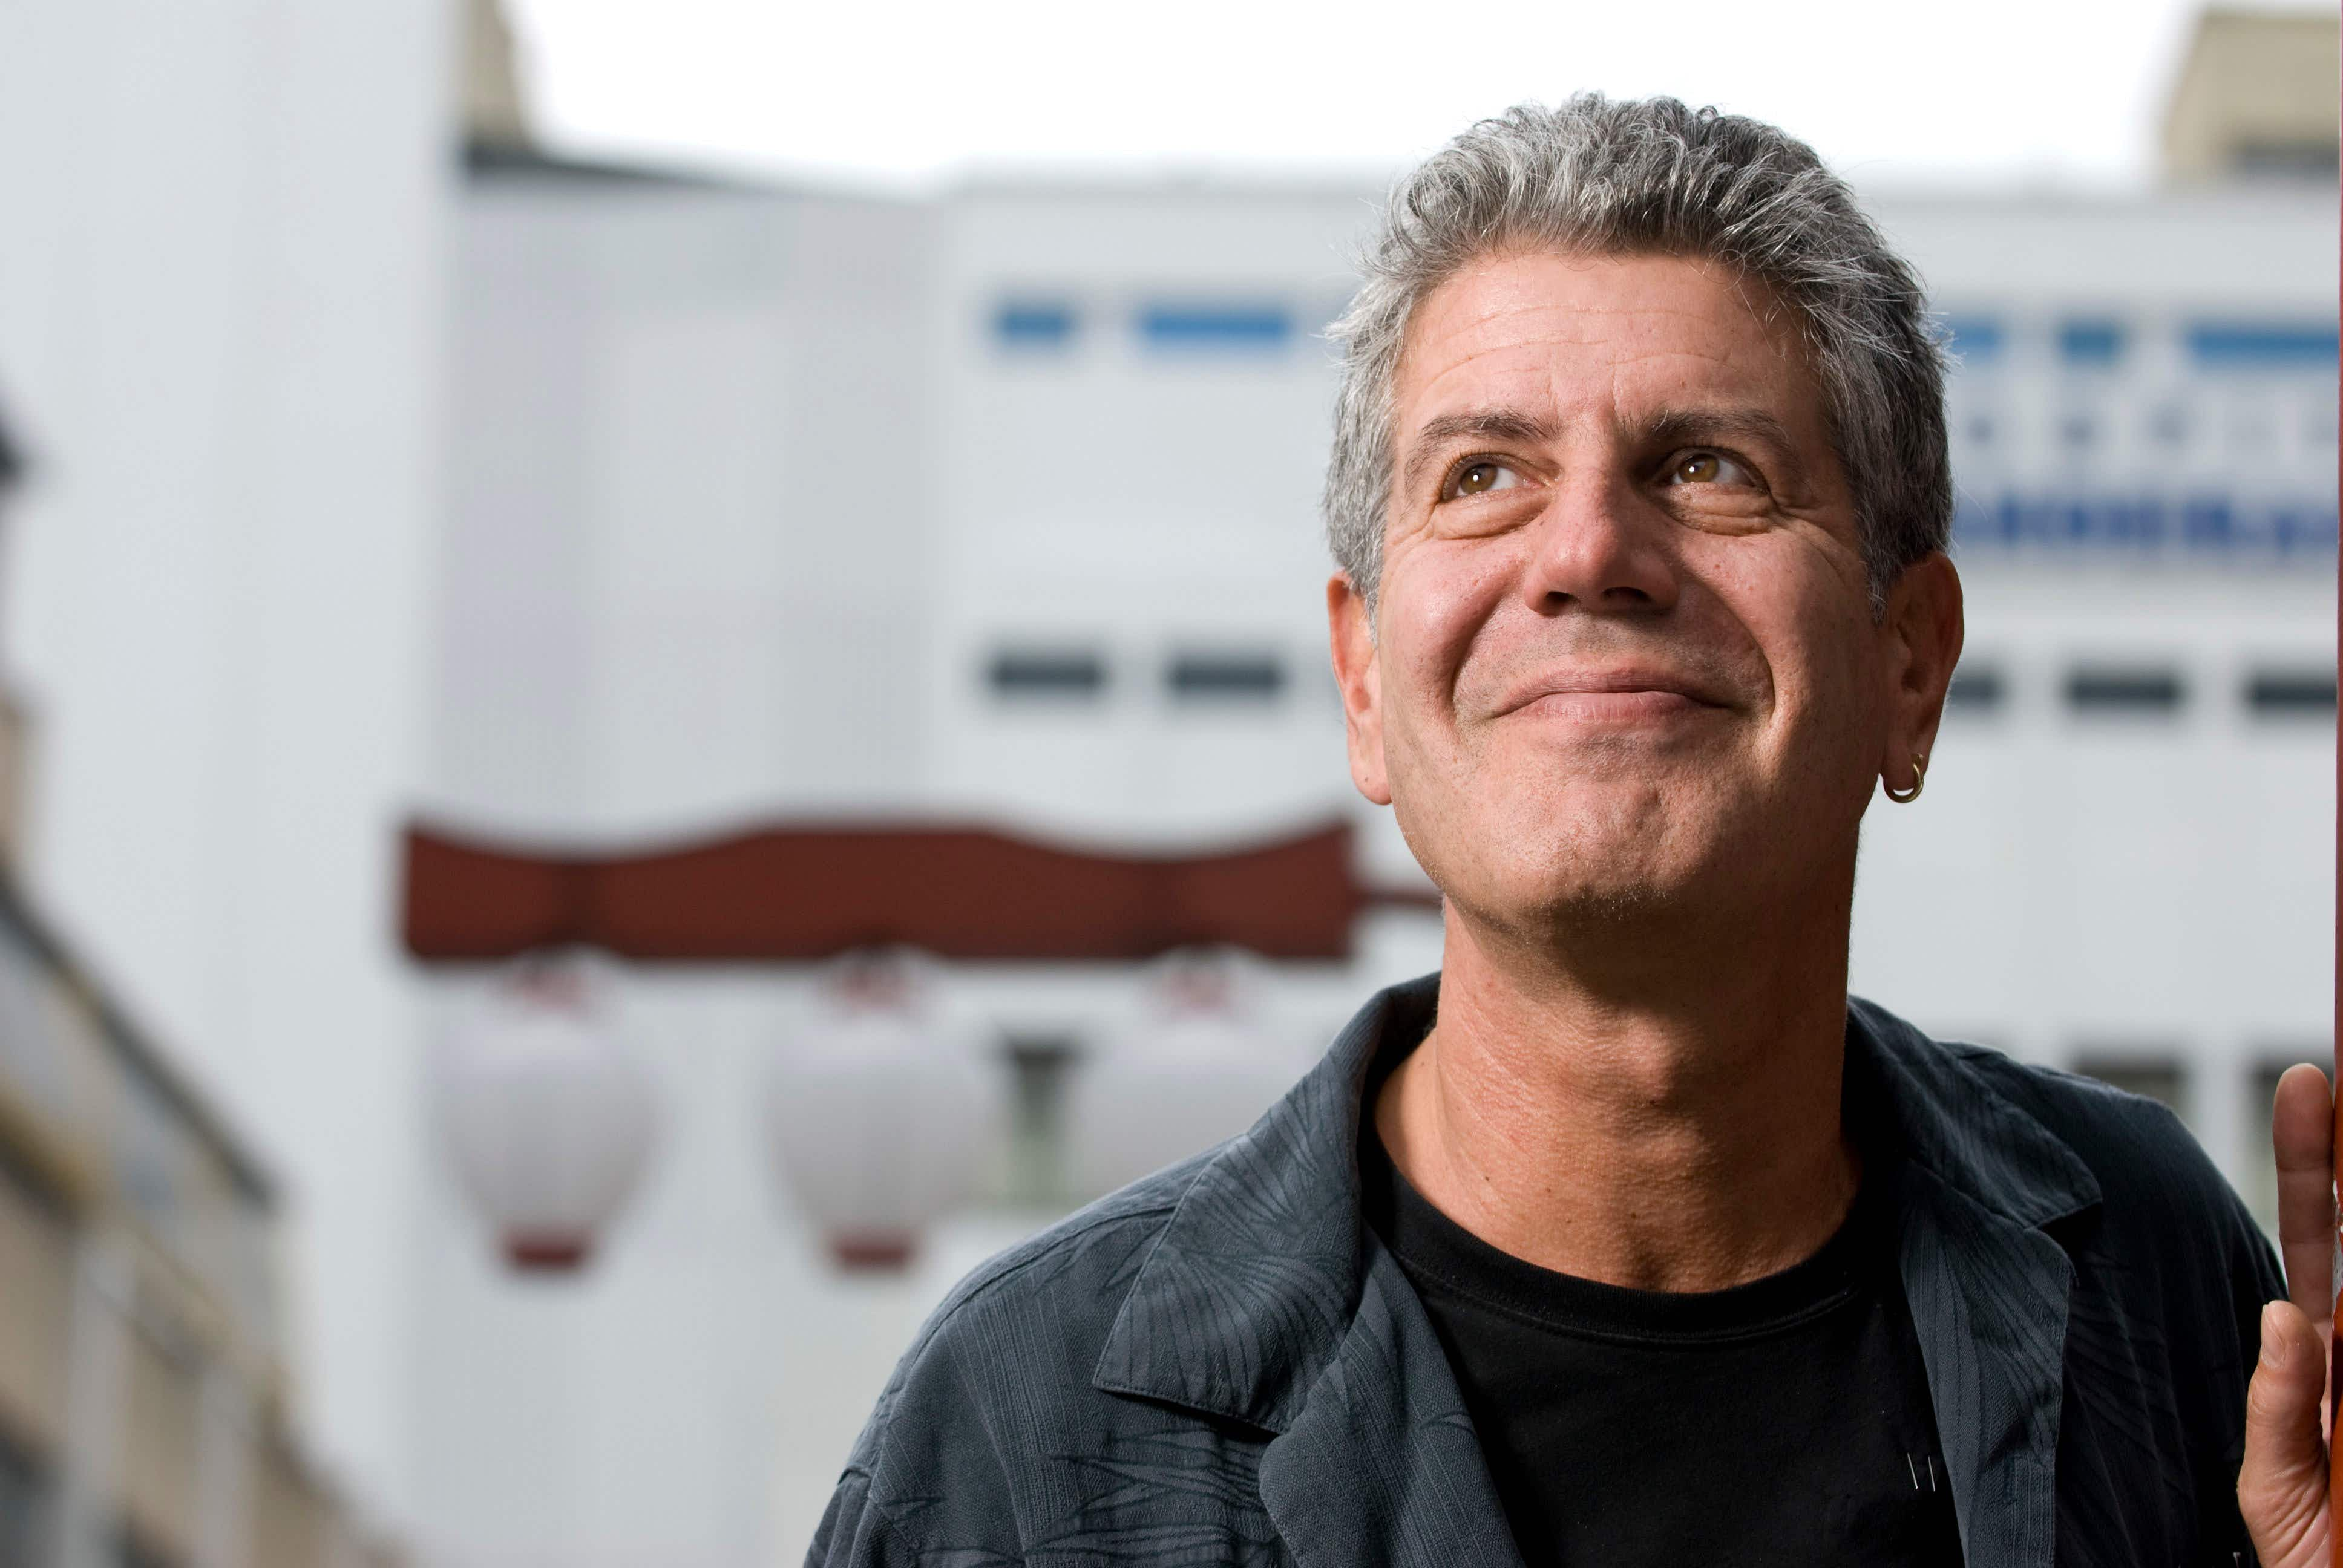 The Anthony Bourdain food trail will become a reality in New Jersey